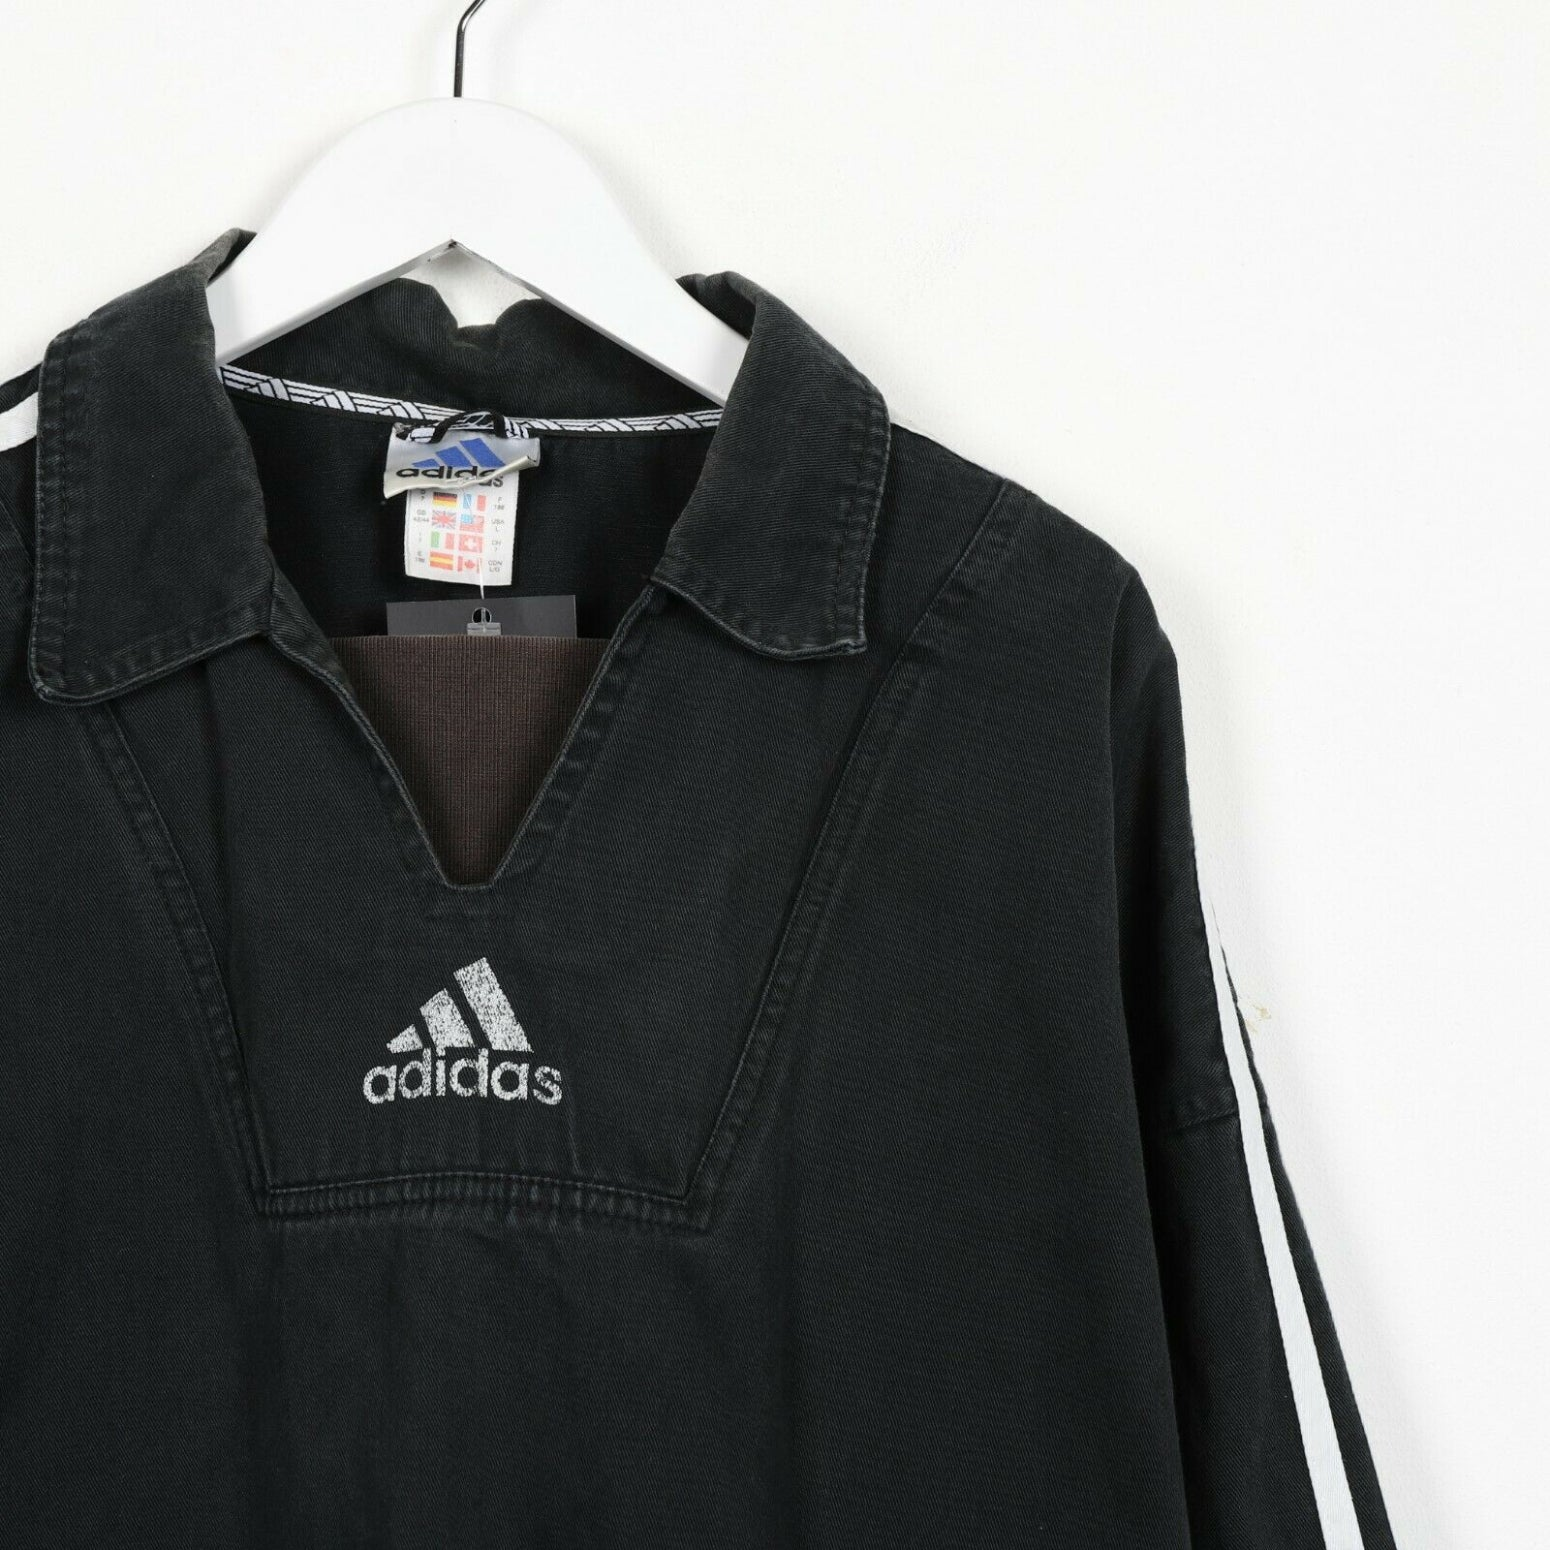 Vintage 90s ADIDAS Big Back Logo Drill Top Sweatshirt Jumper Black | Large L